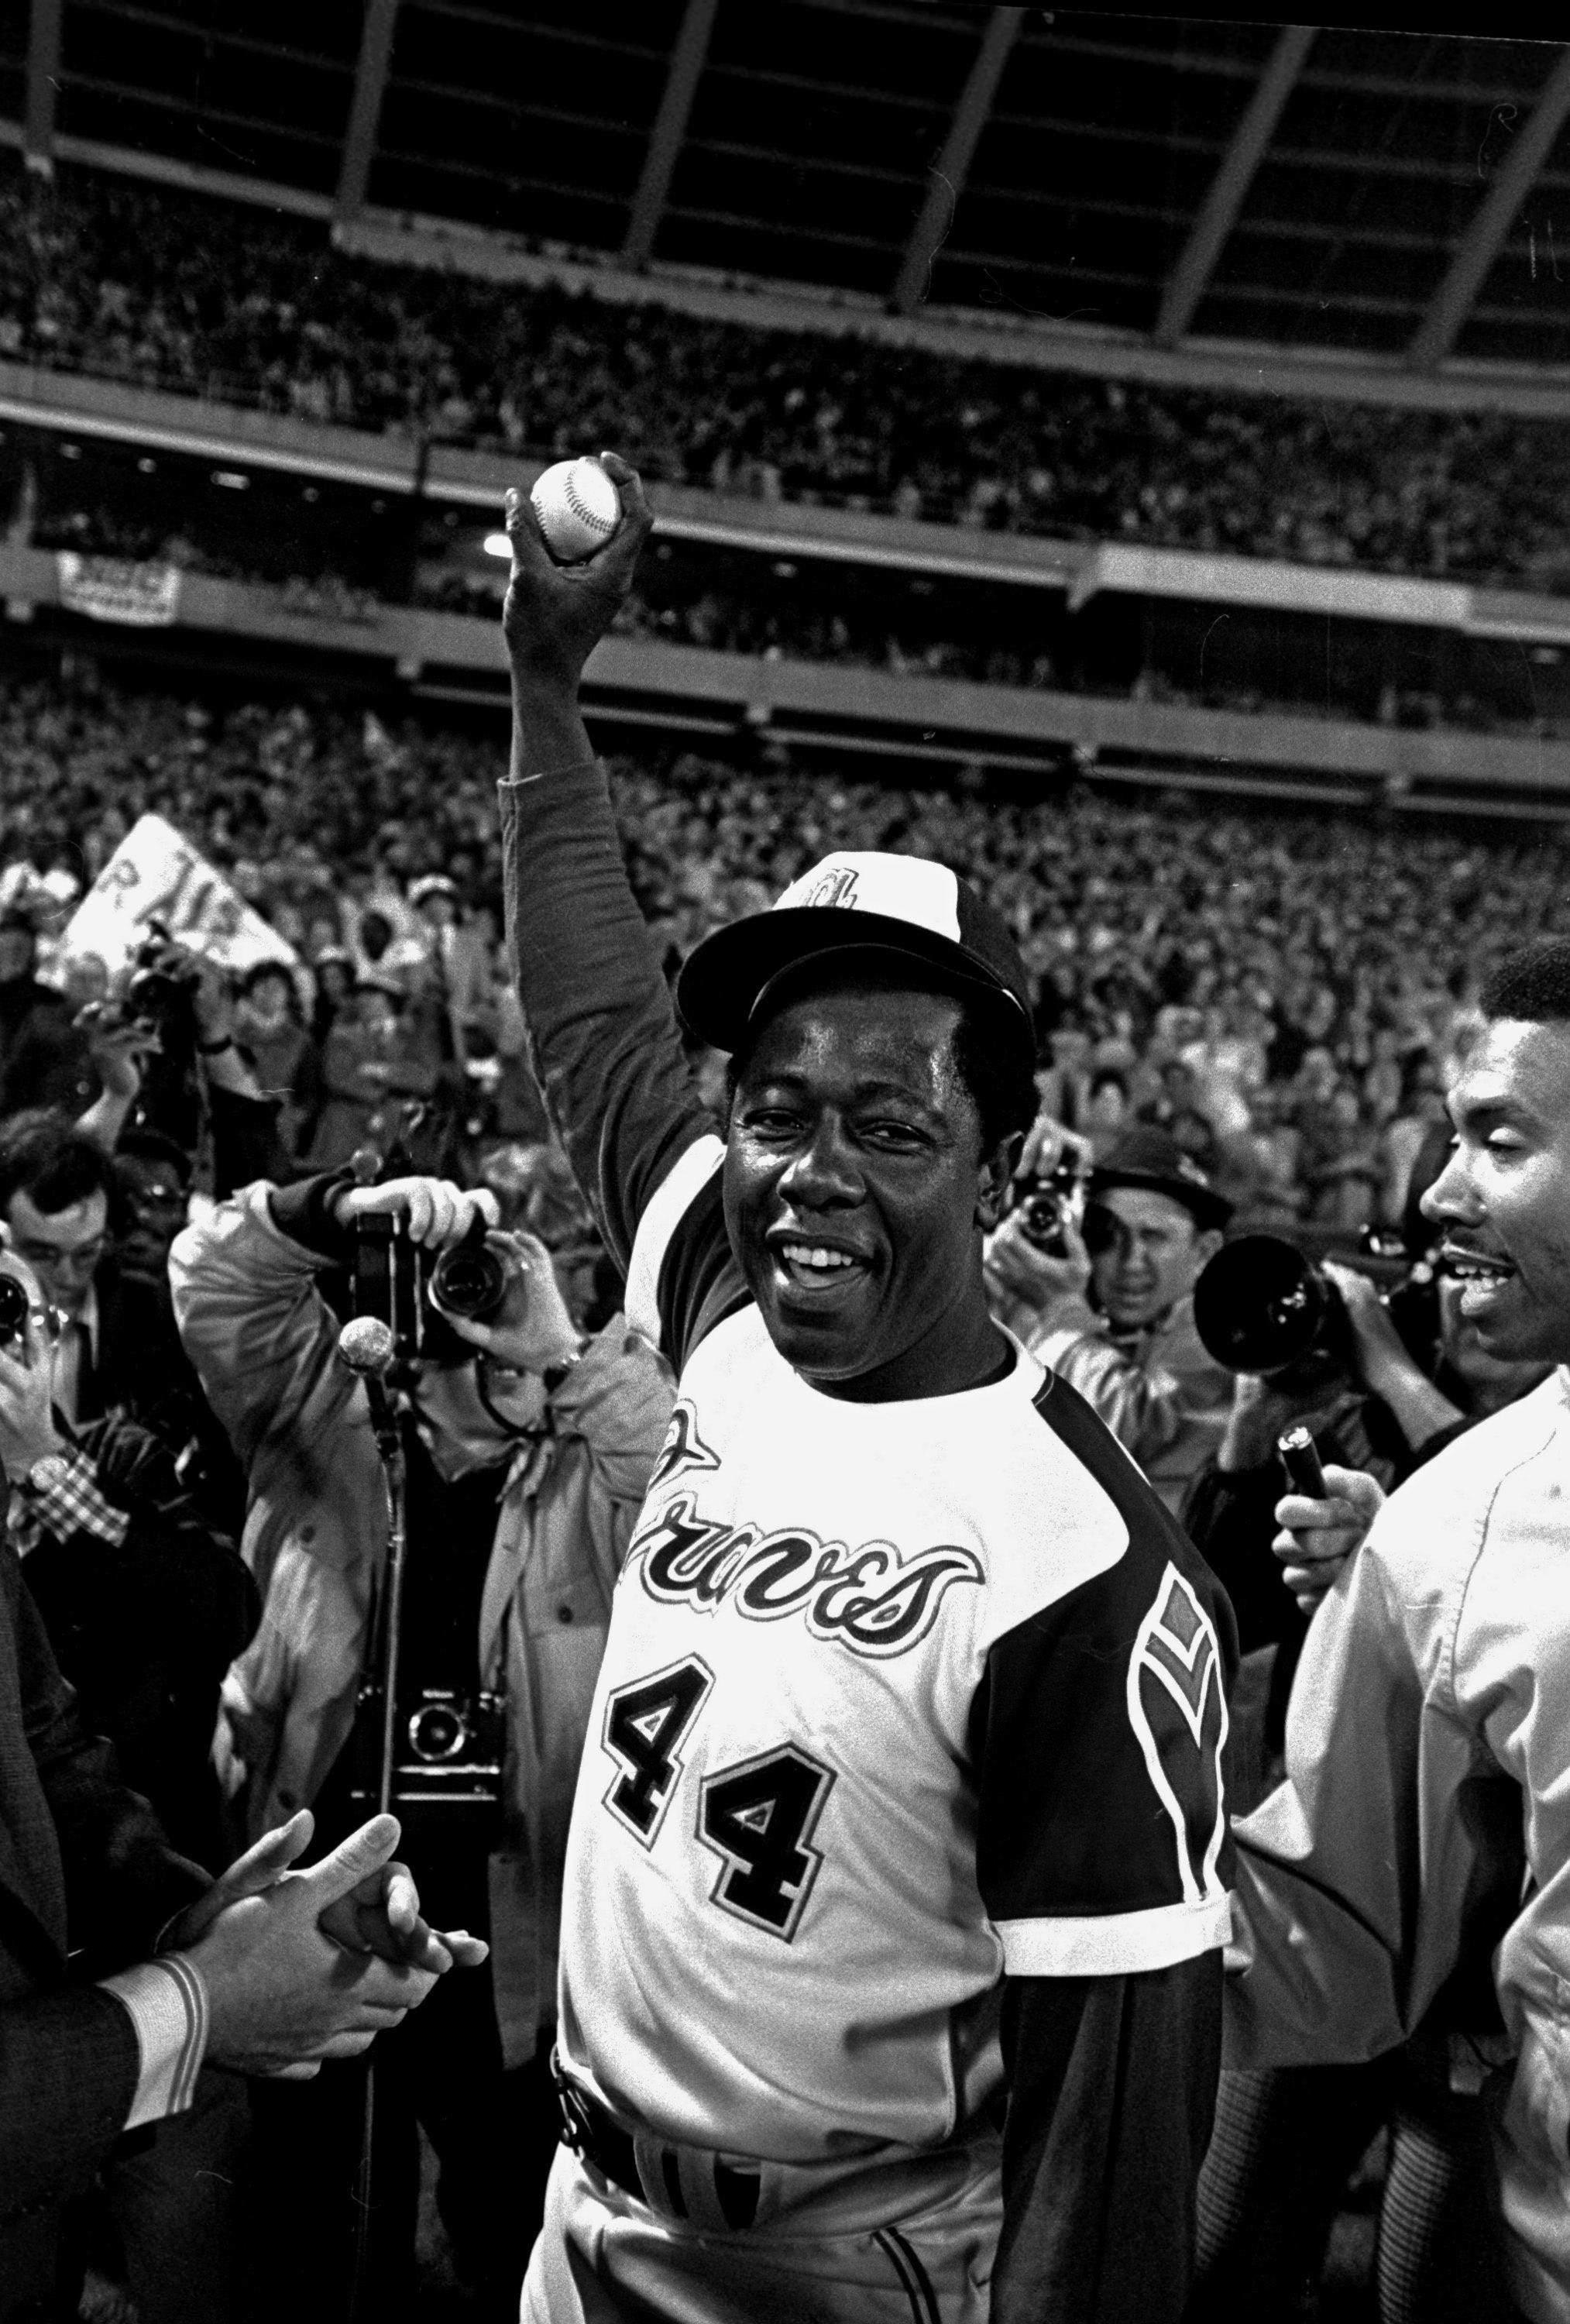 Baseball Hall of Famer and former MLB home run king Hank Aaron dies at 86